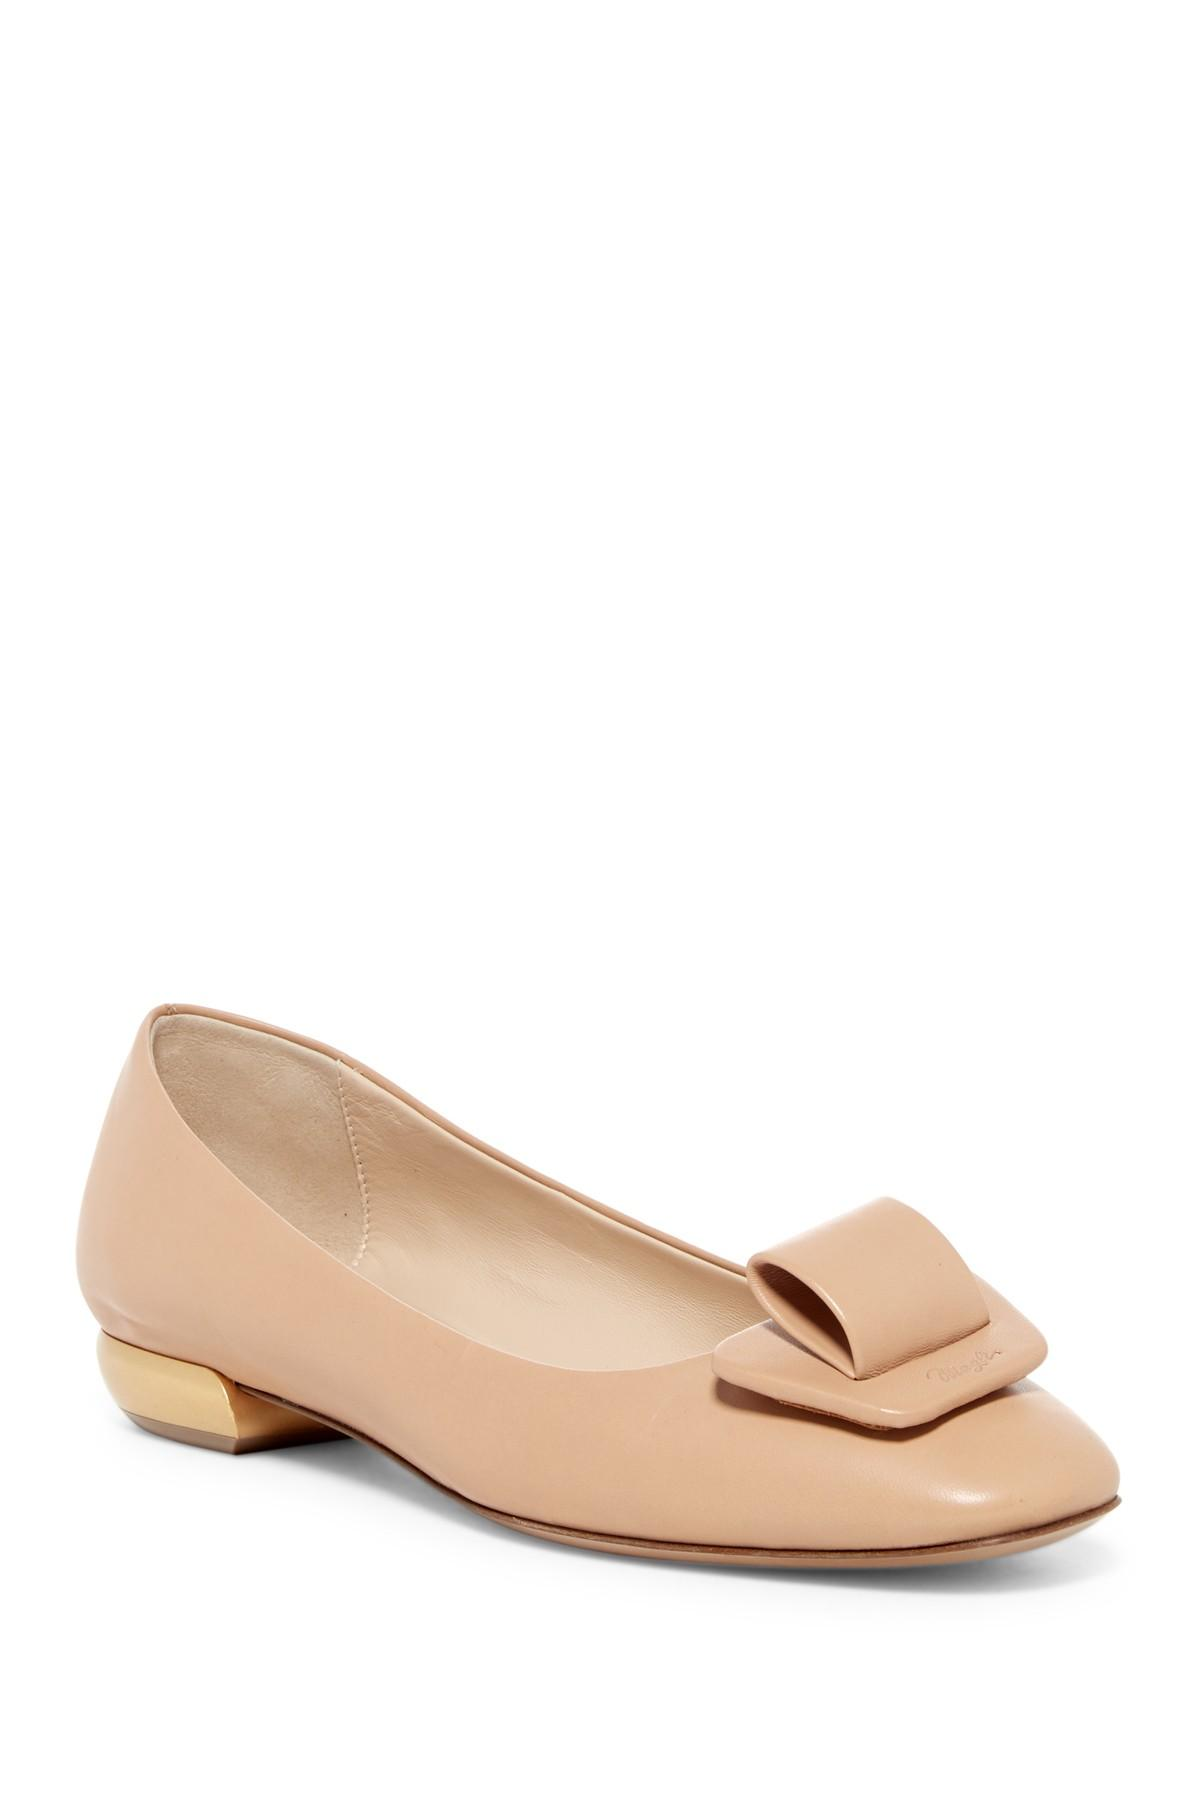 Bruno Magli Womens Shoes Nordstrom